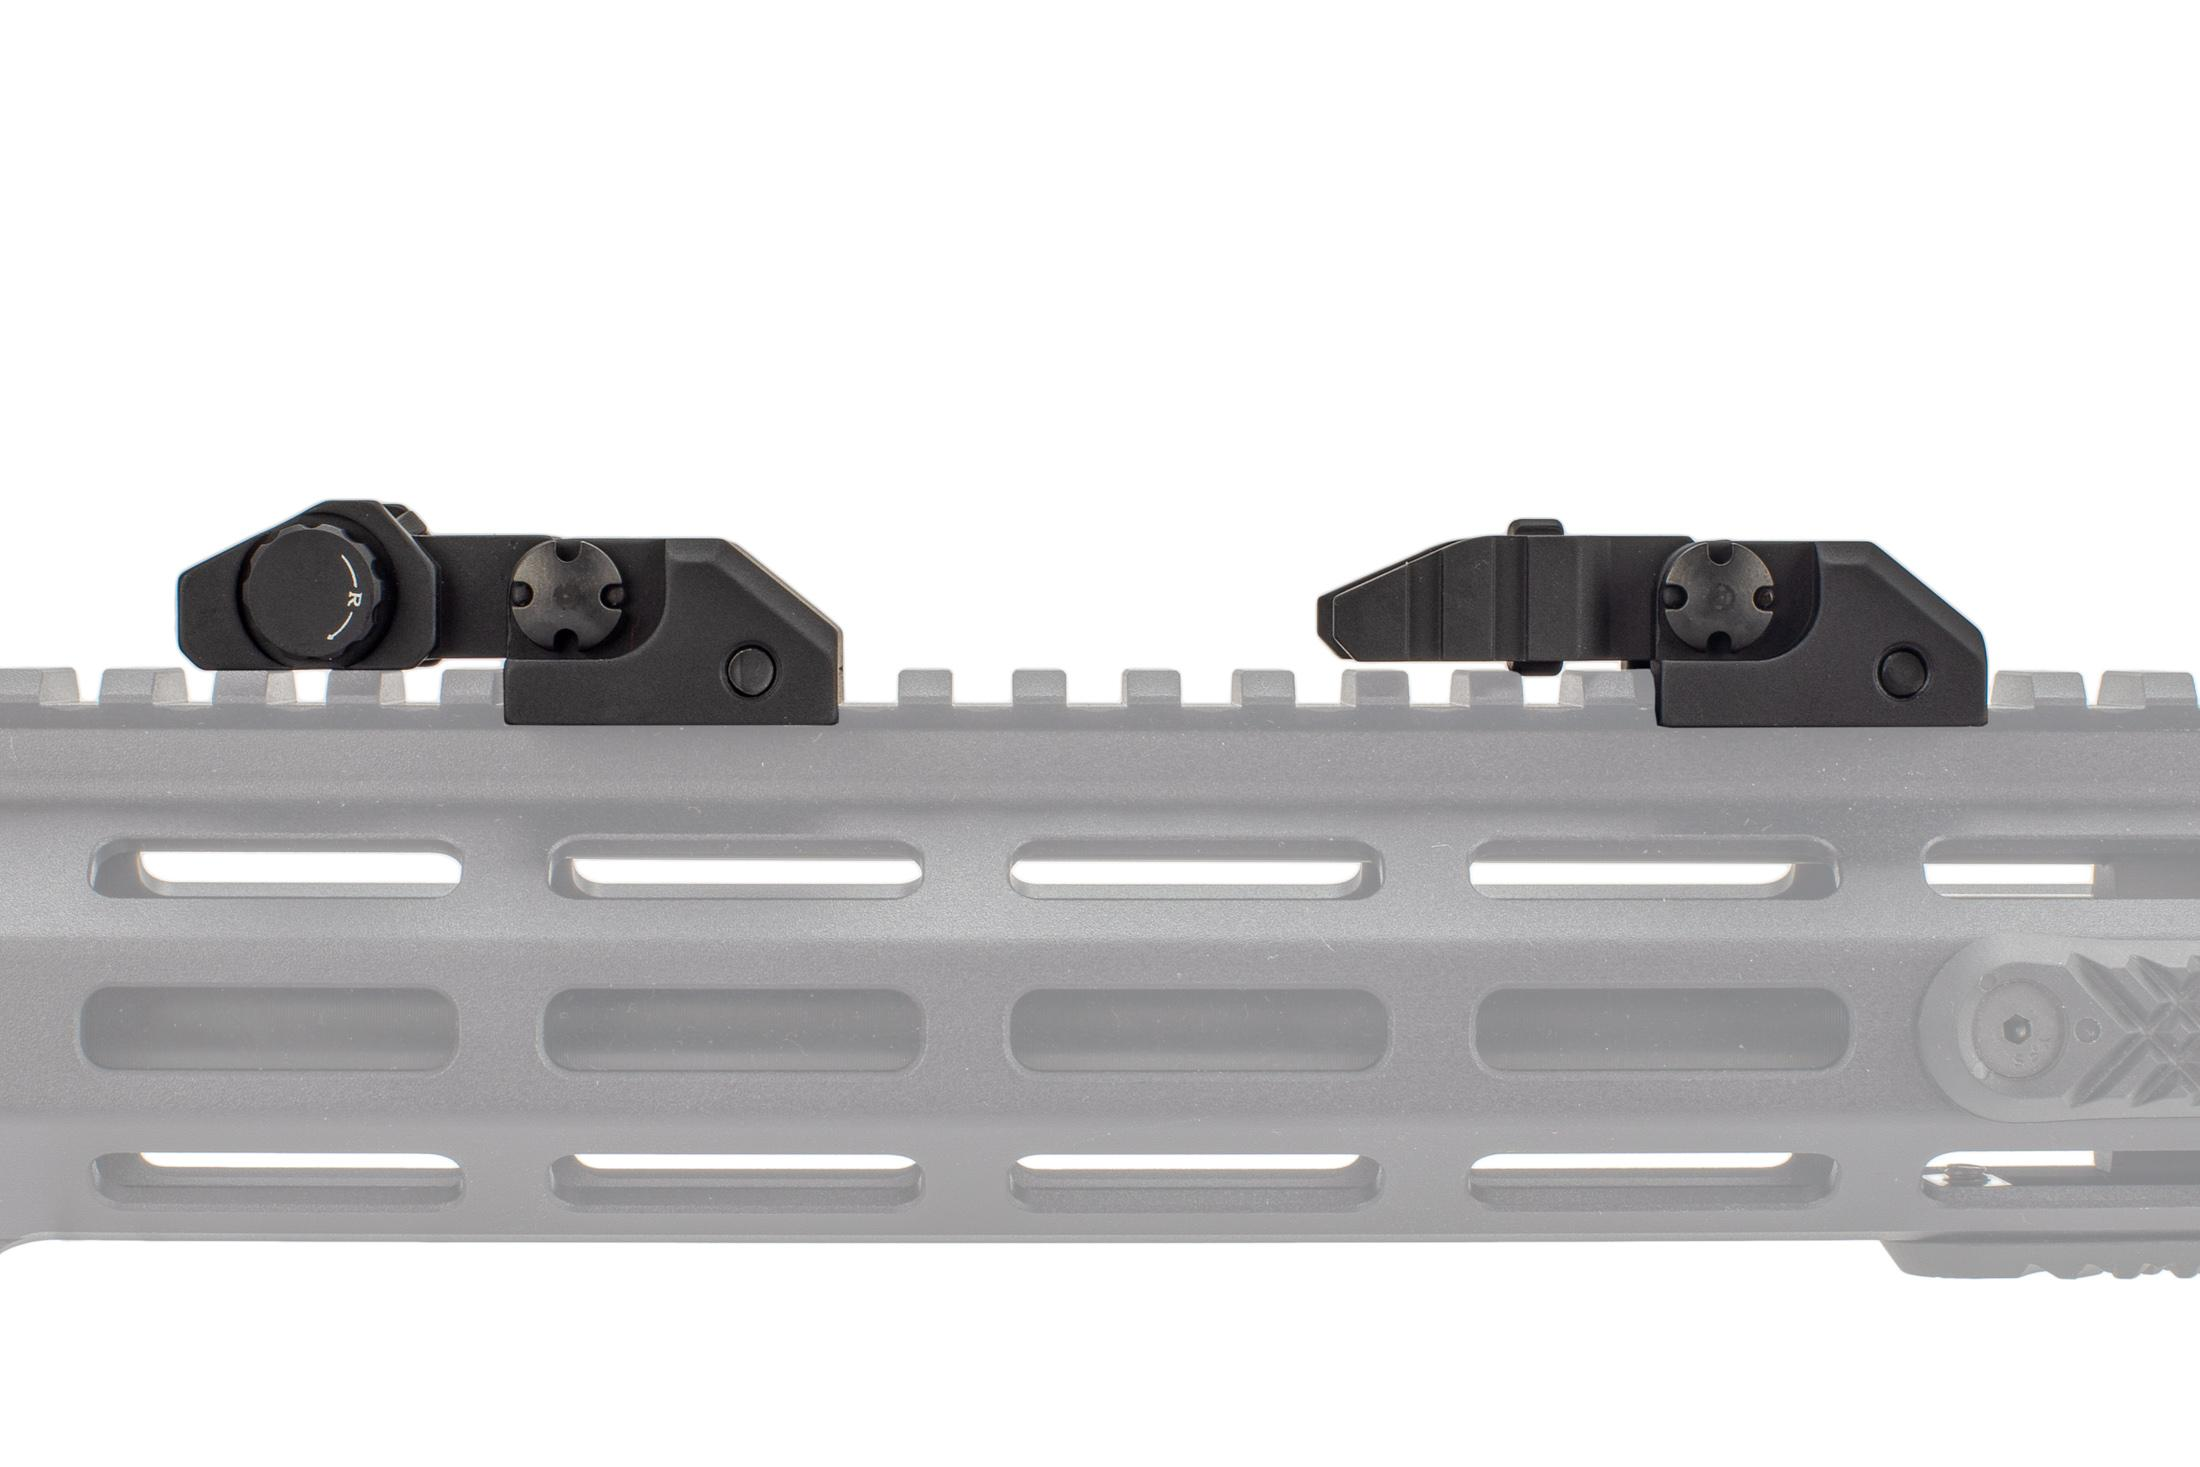 The Guntec Rapid Acquisition Precision Sights fold down to be extremely low profile